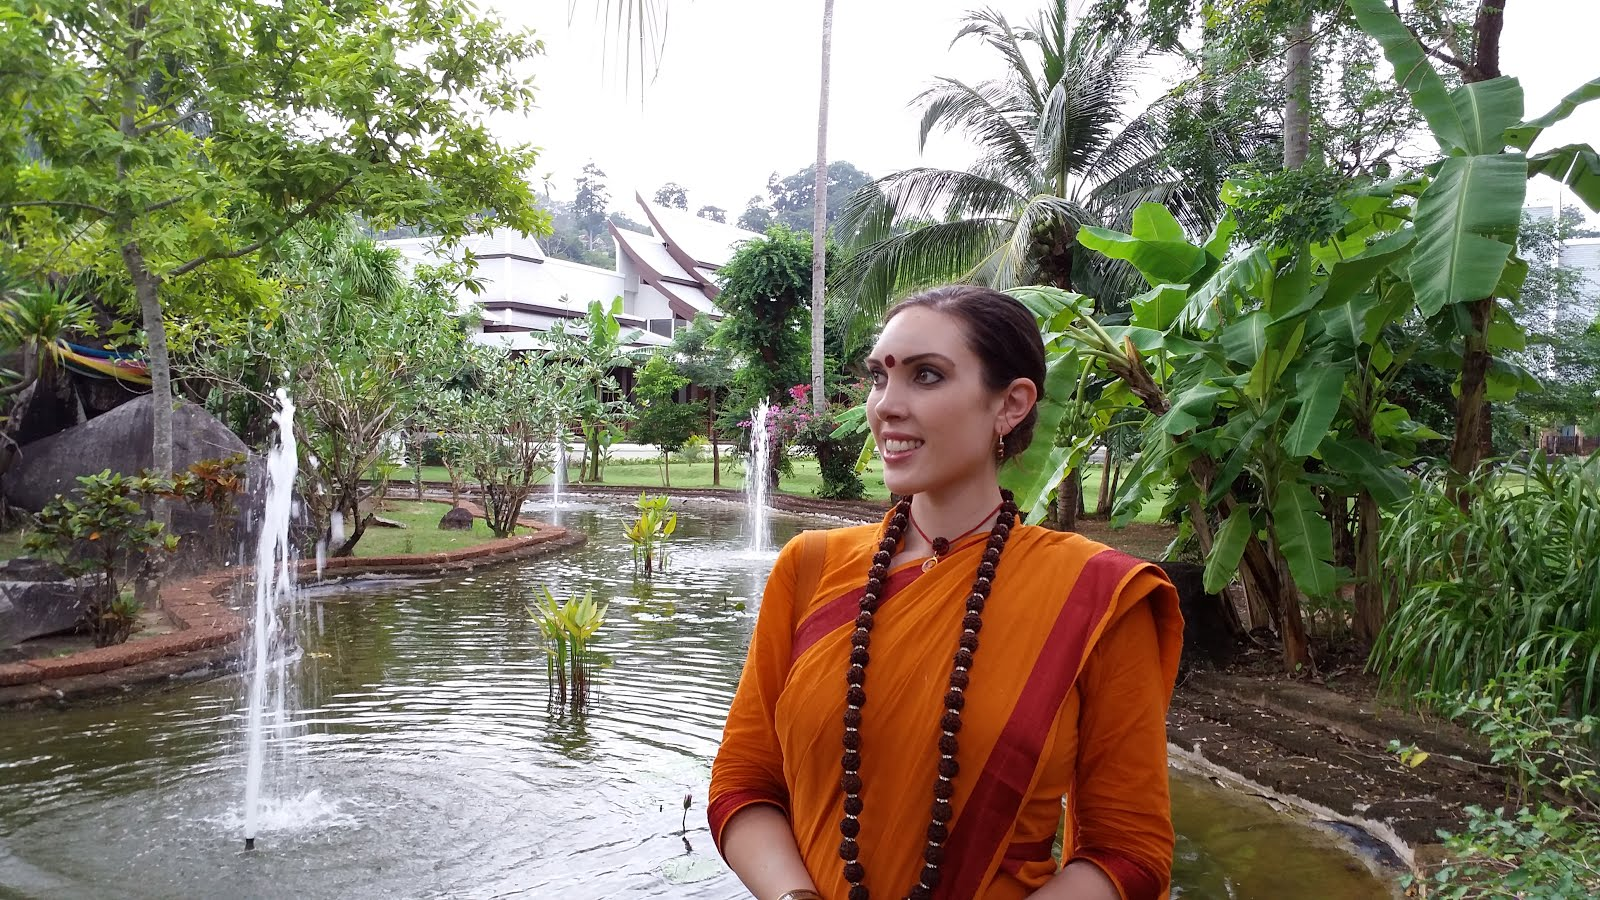 Filming a YouTube video about Inner Awakening in Thailand